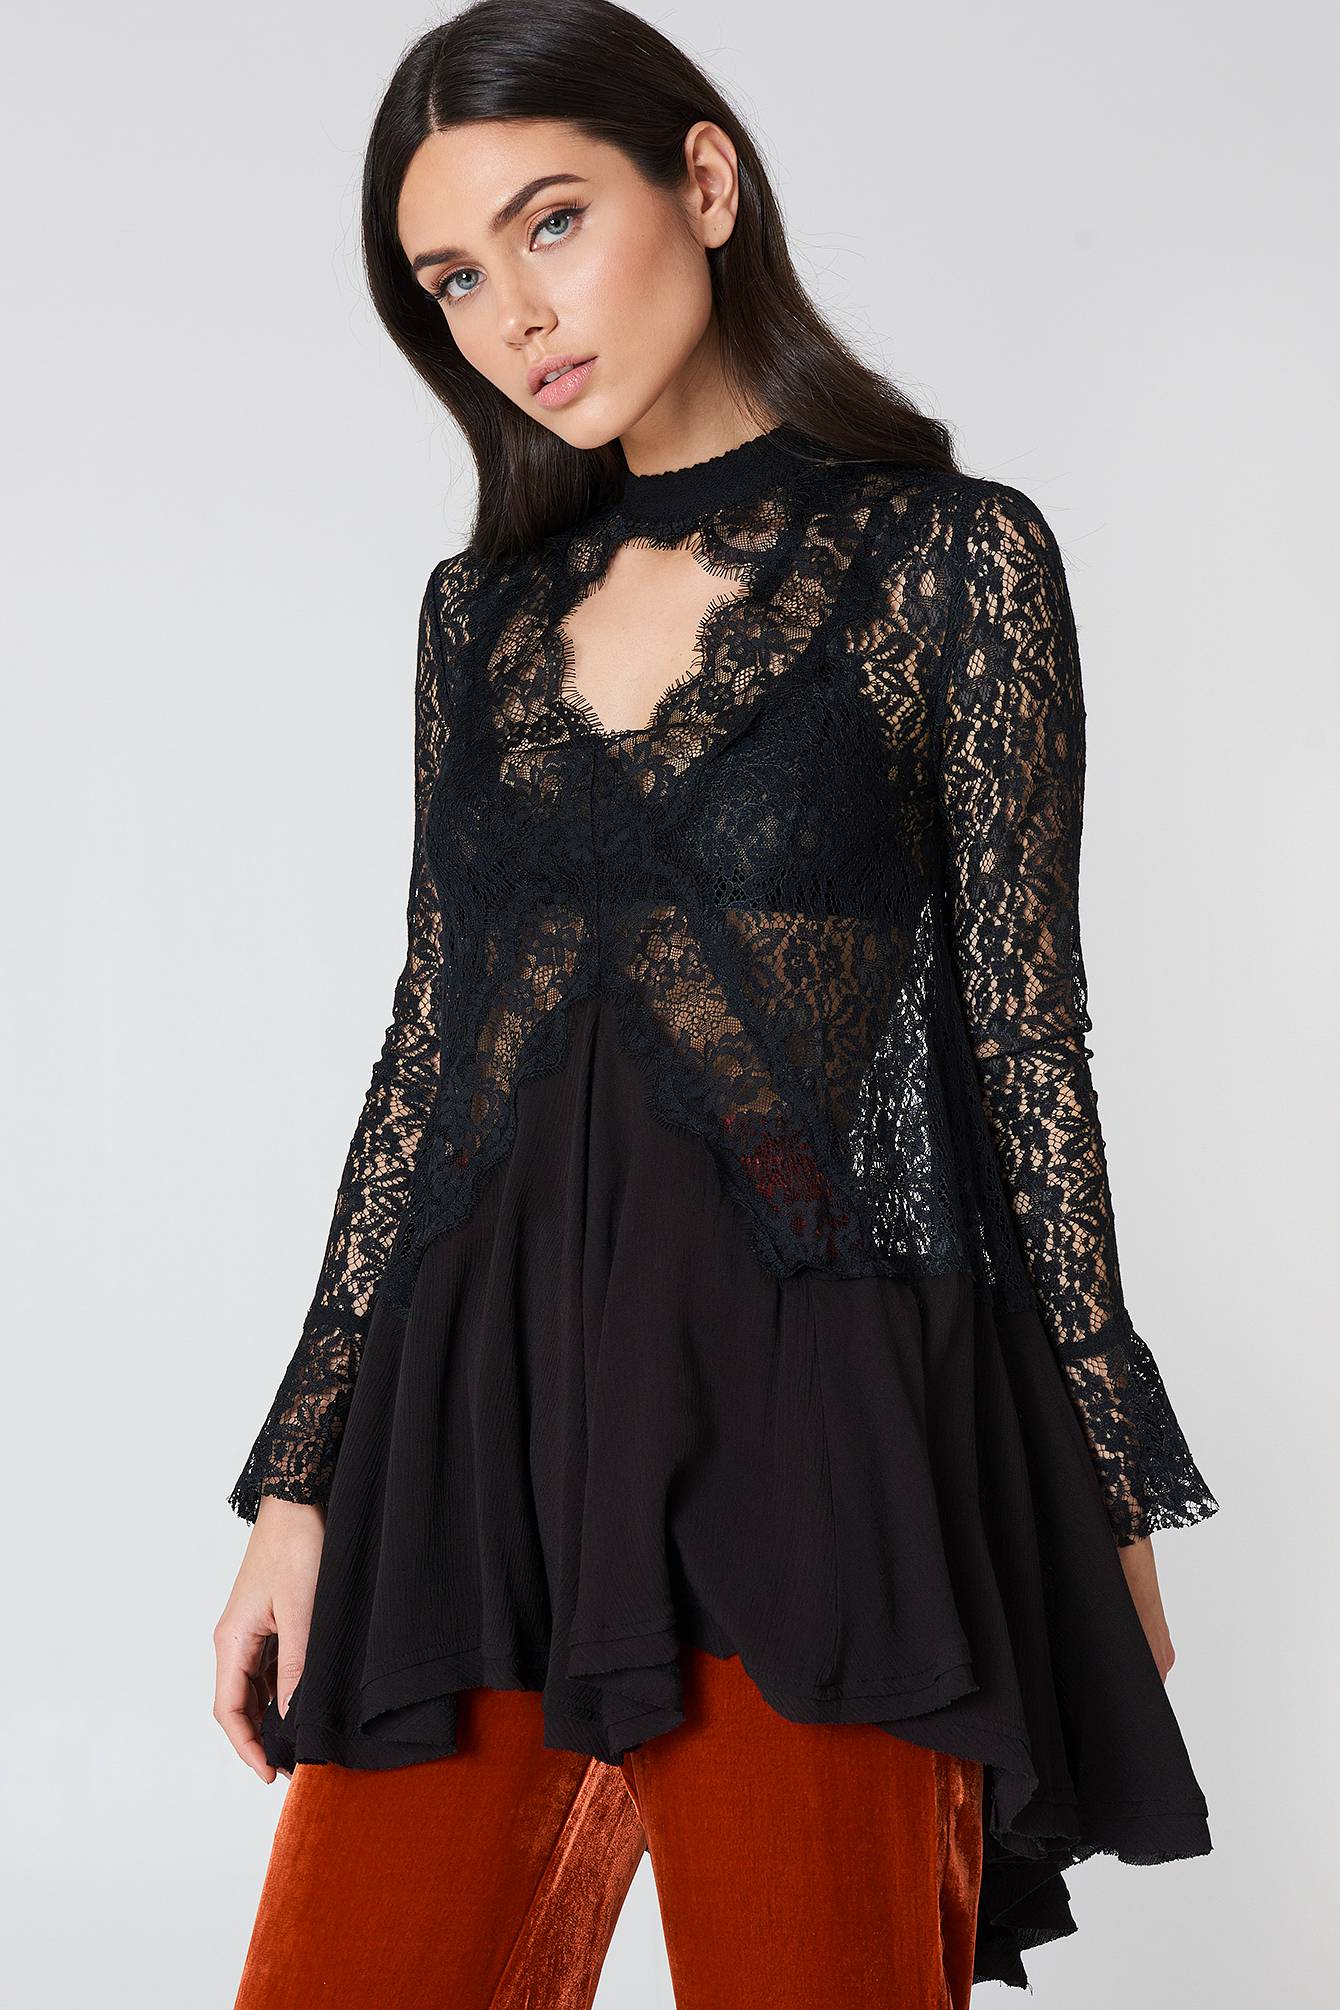 Free People New Tell Tale Lace Long Sleeve Tunic - Black